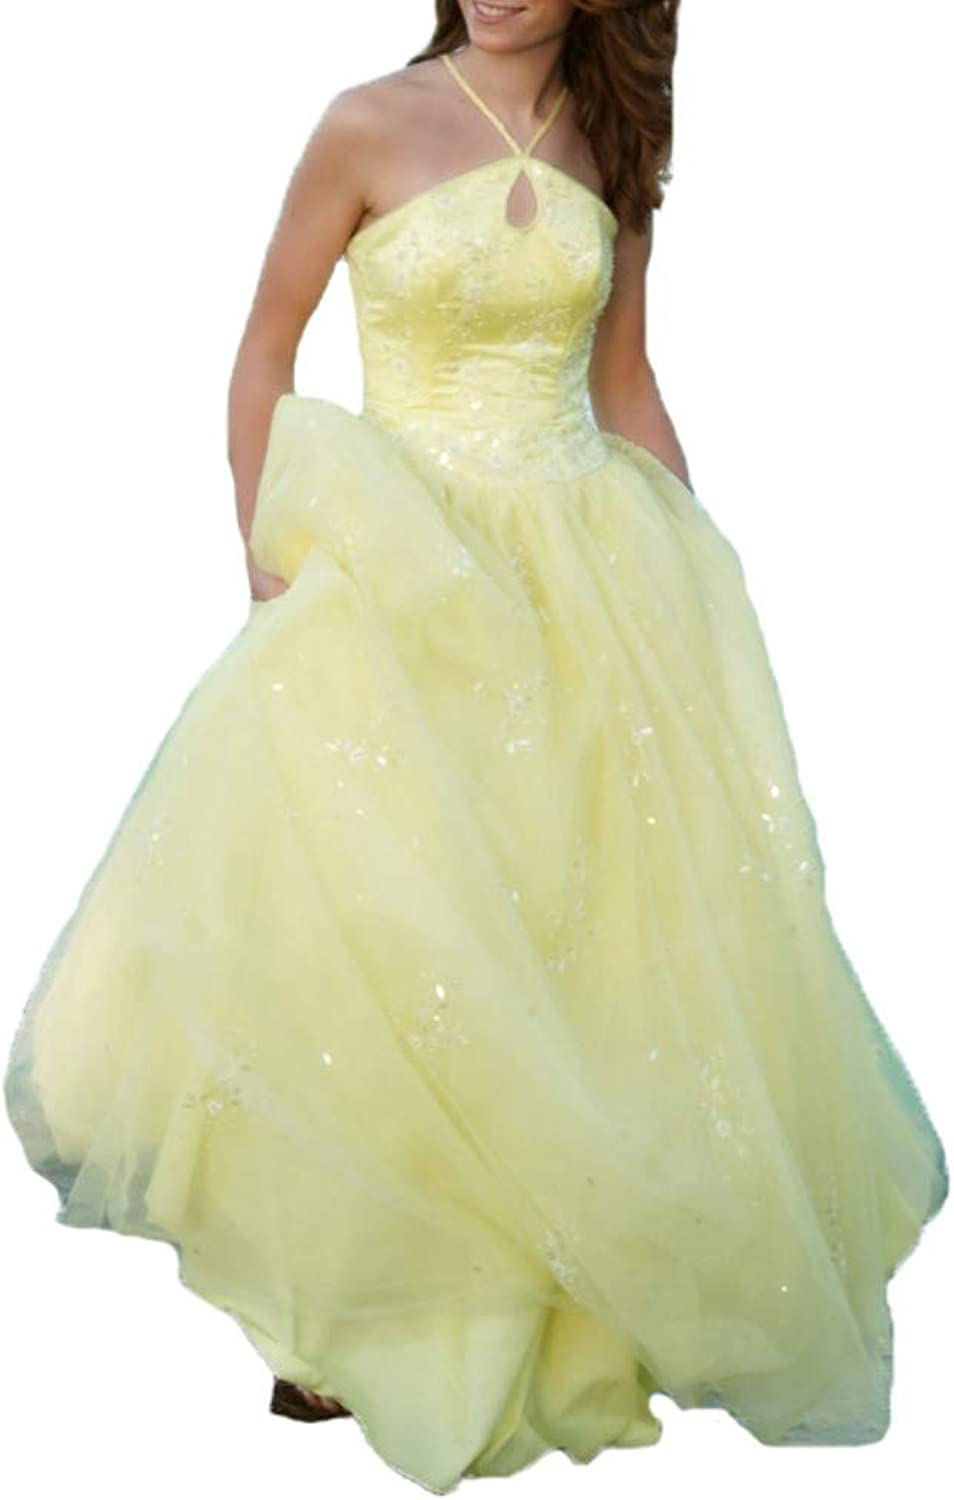 Liaoye Long Lace Prom Dresses Beaded Evening Dress Prom Yellow Evening Ball Gown Bridal Wedding Dresses